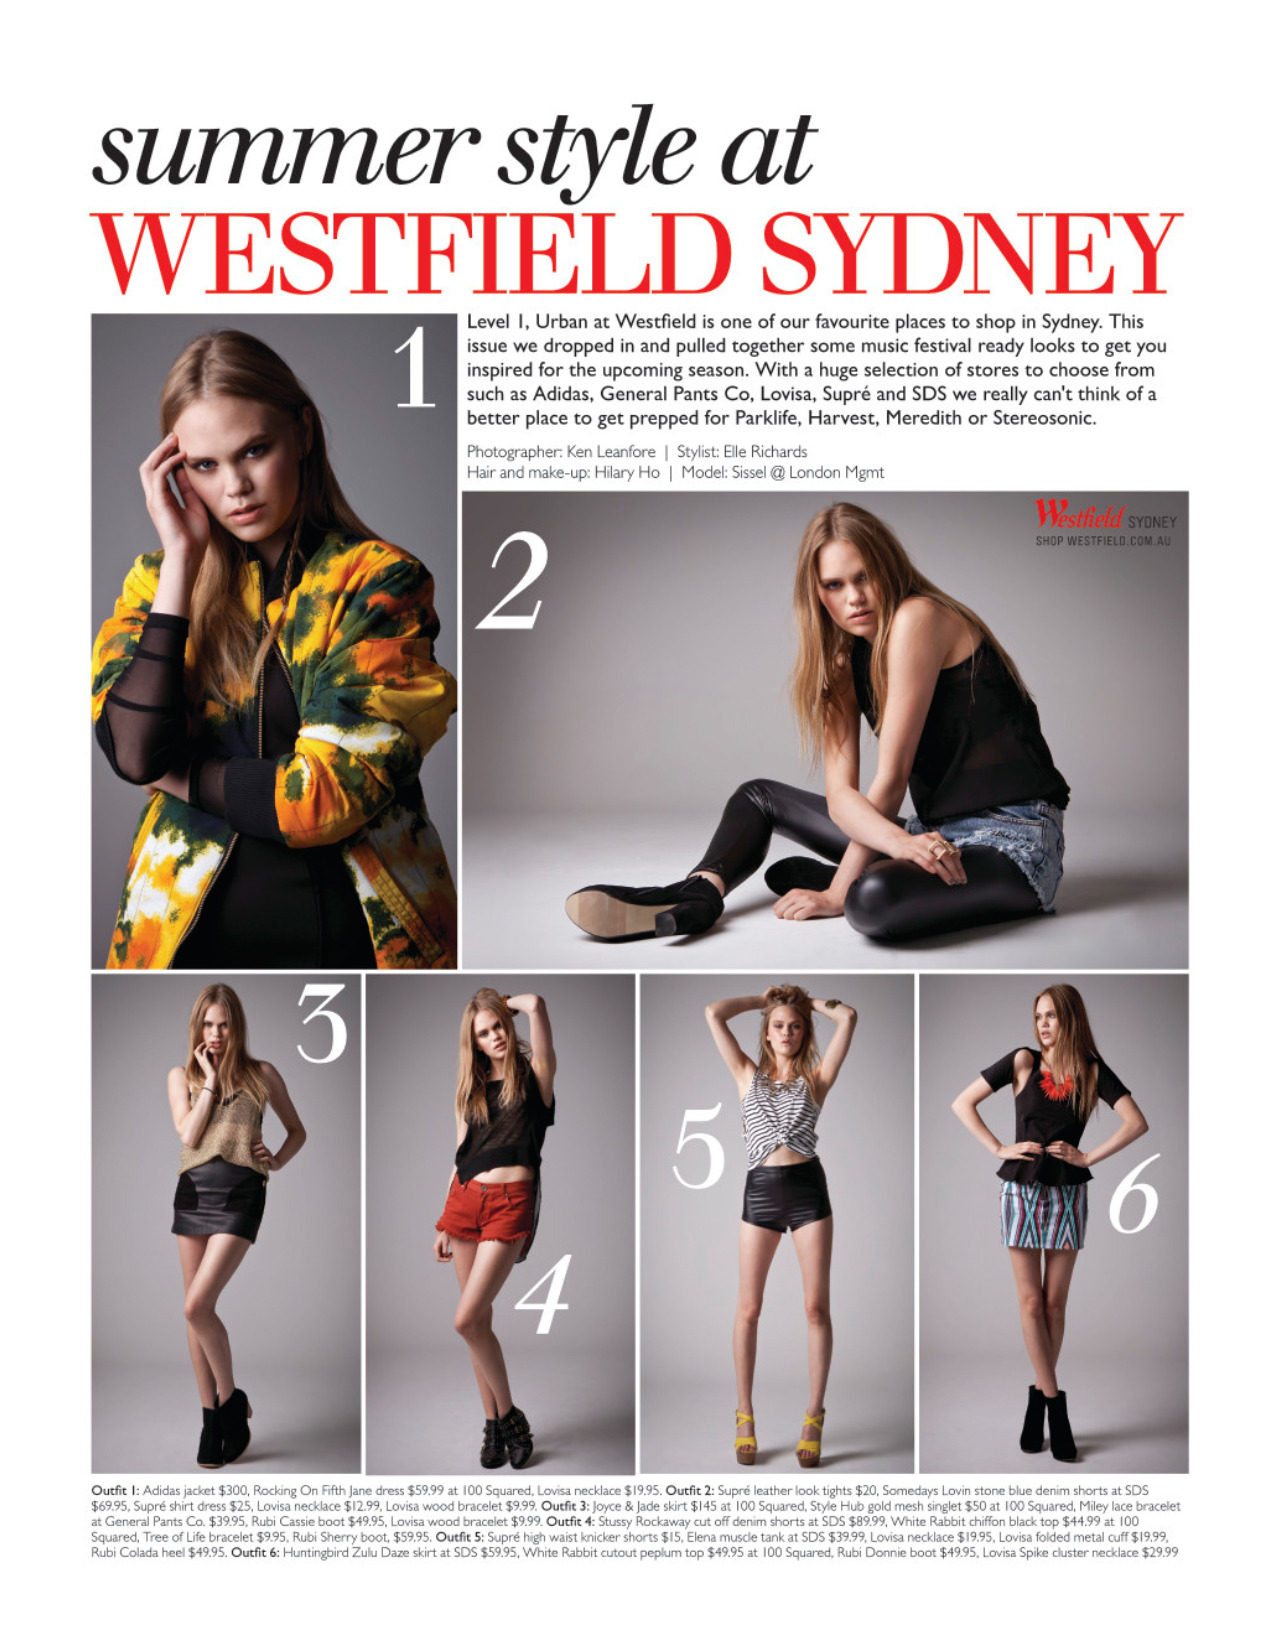 Westfield Sydney X Fashion Journal (September 2012 Issue) Photography - Ken LeanforeStyling - Isabelle RichardsHair / Makeup - Hilary HoModel - Sissel @ London MGT